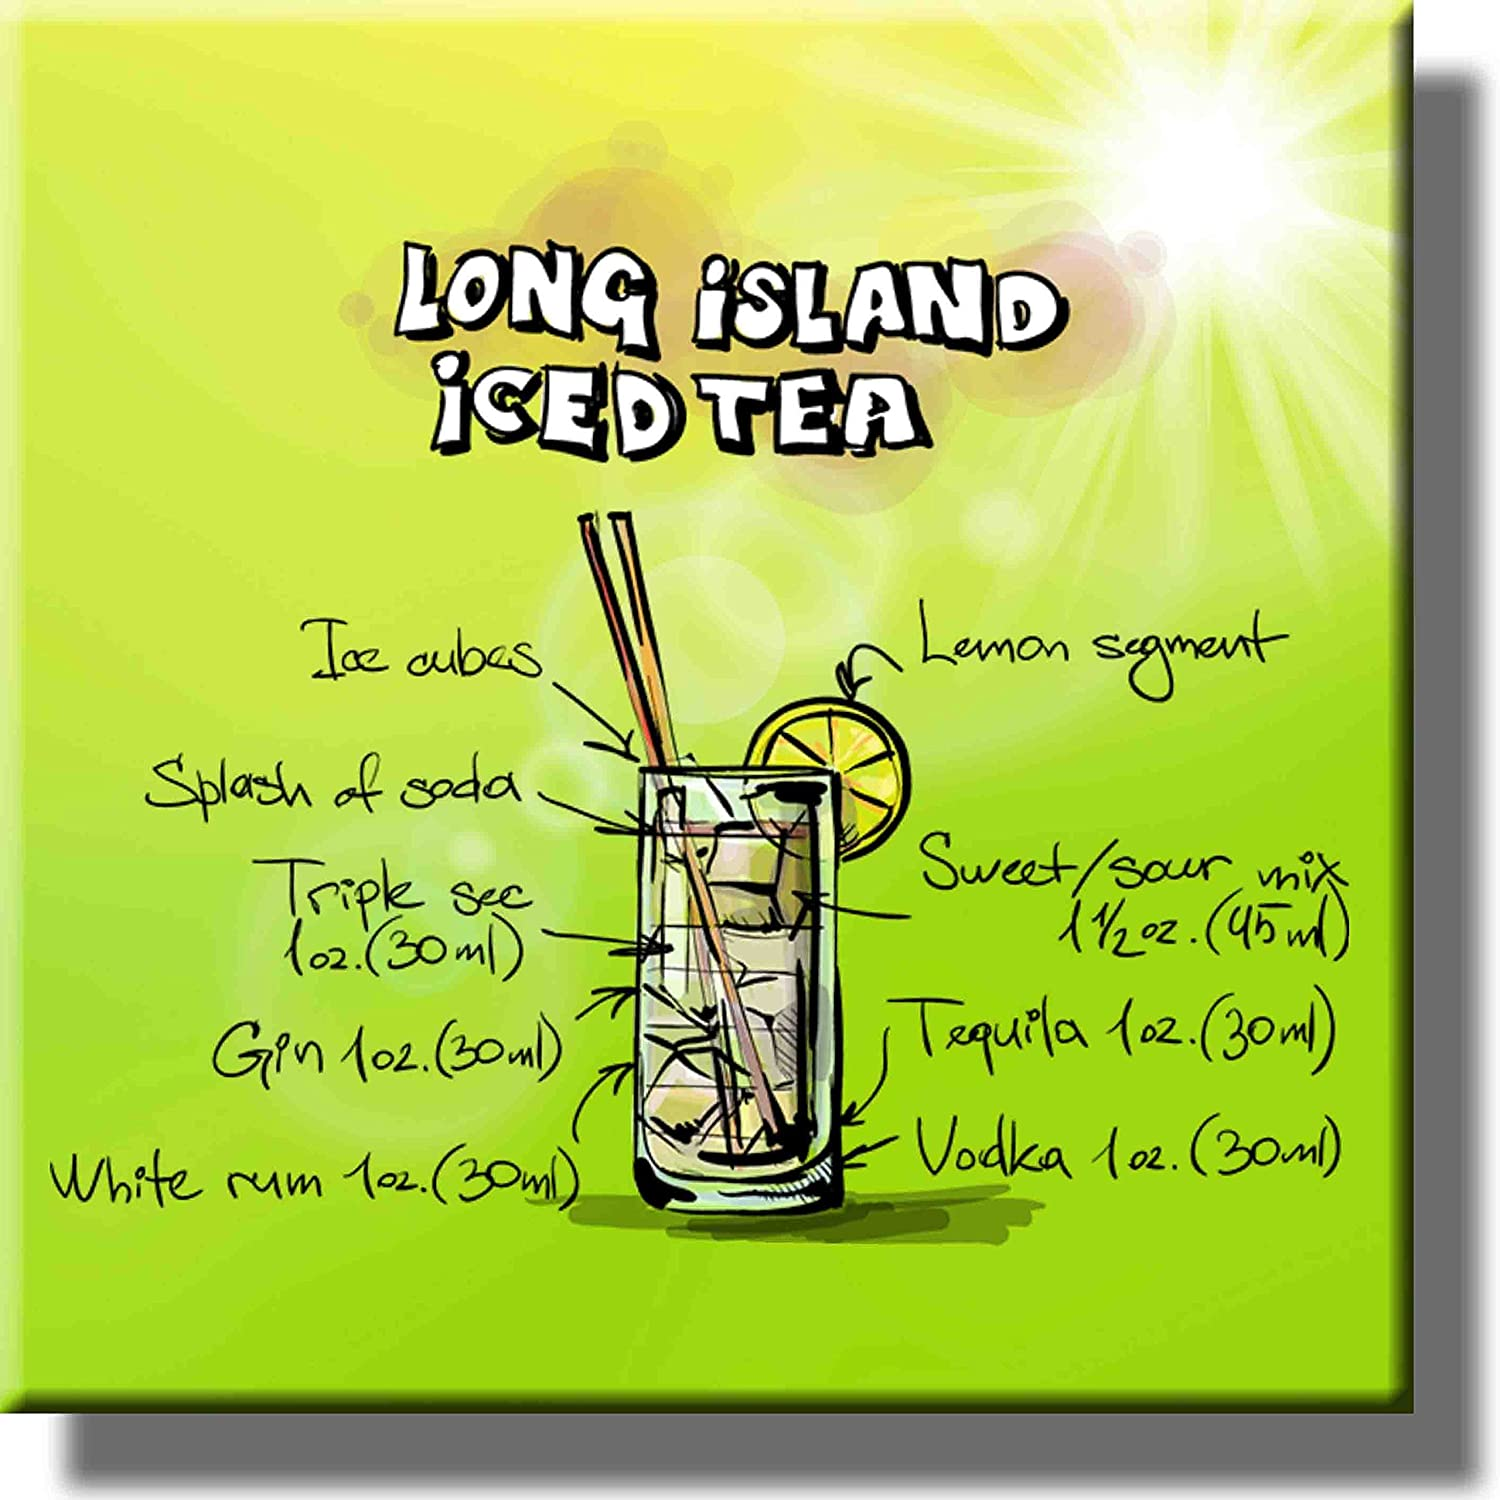 Long Island Iced Tea Cocktail Recipe Picture on Stretched Canvas, Wall Art Decor, Ready to Hang!